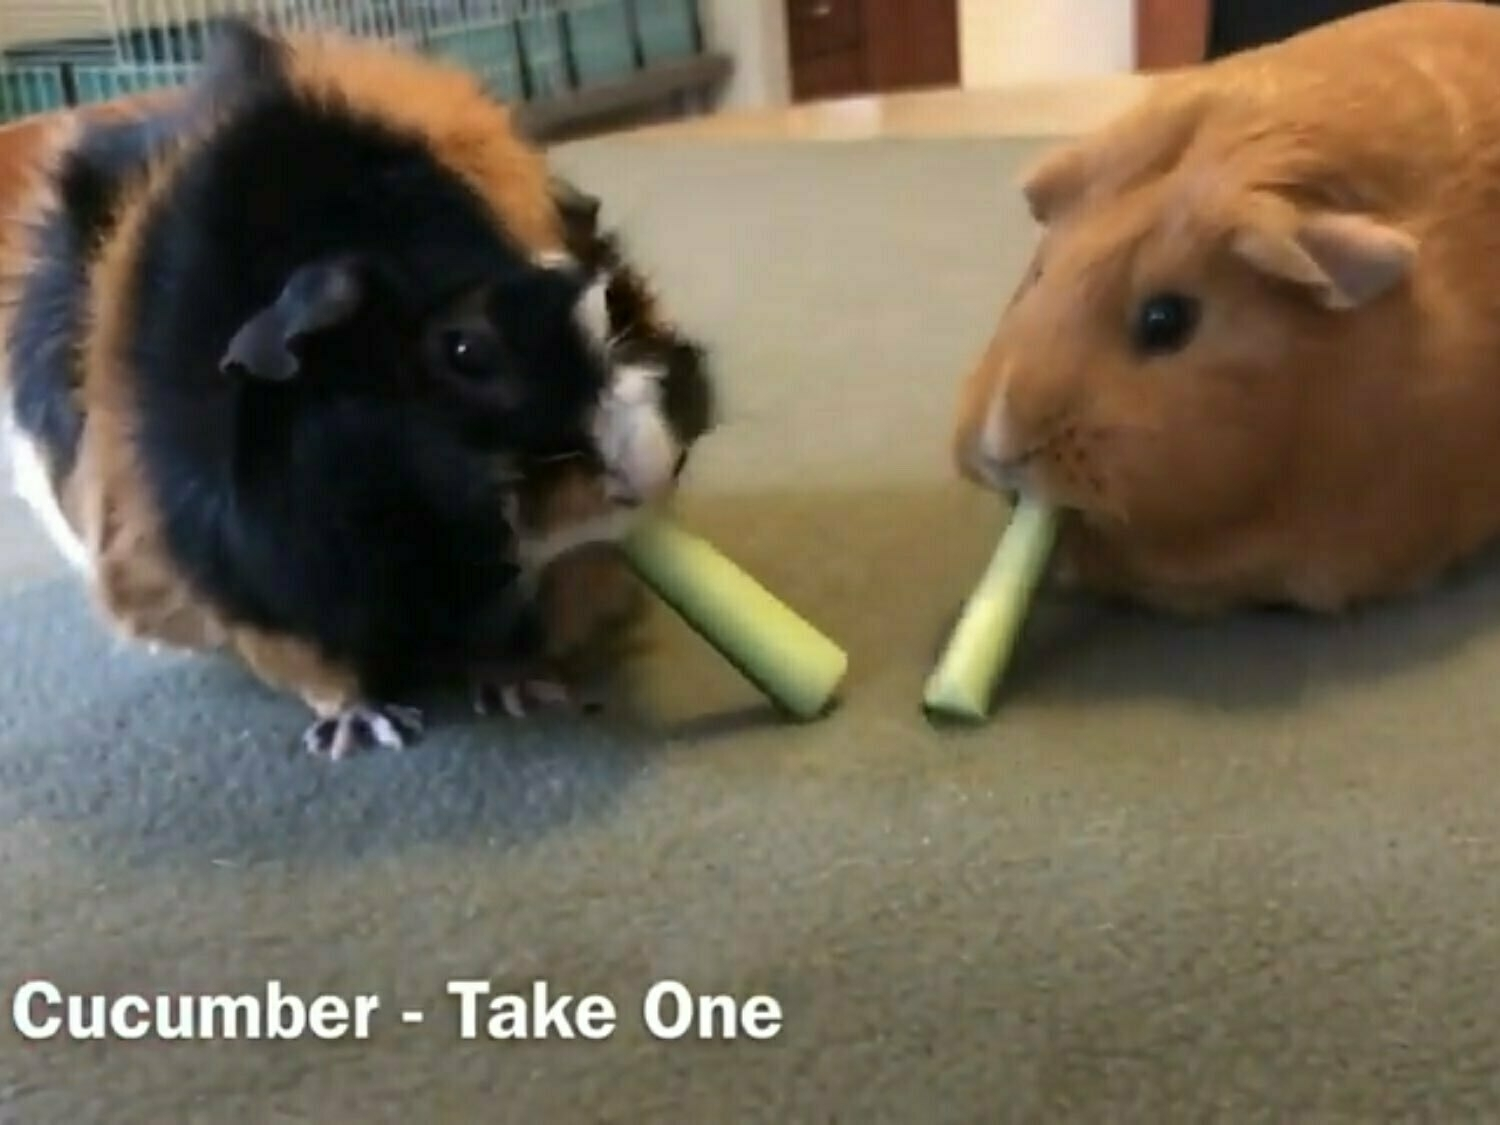 Two guinea pigs eating cucumber